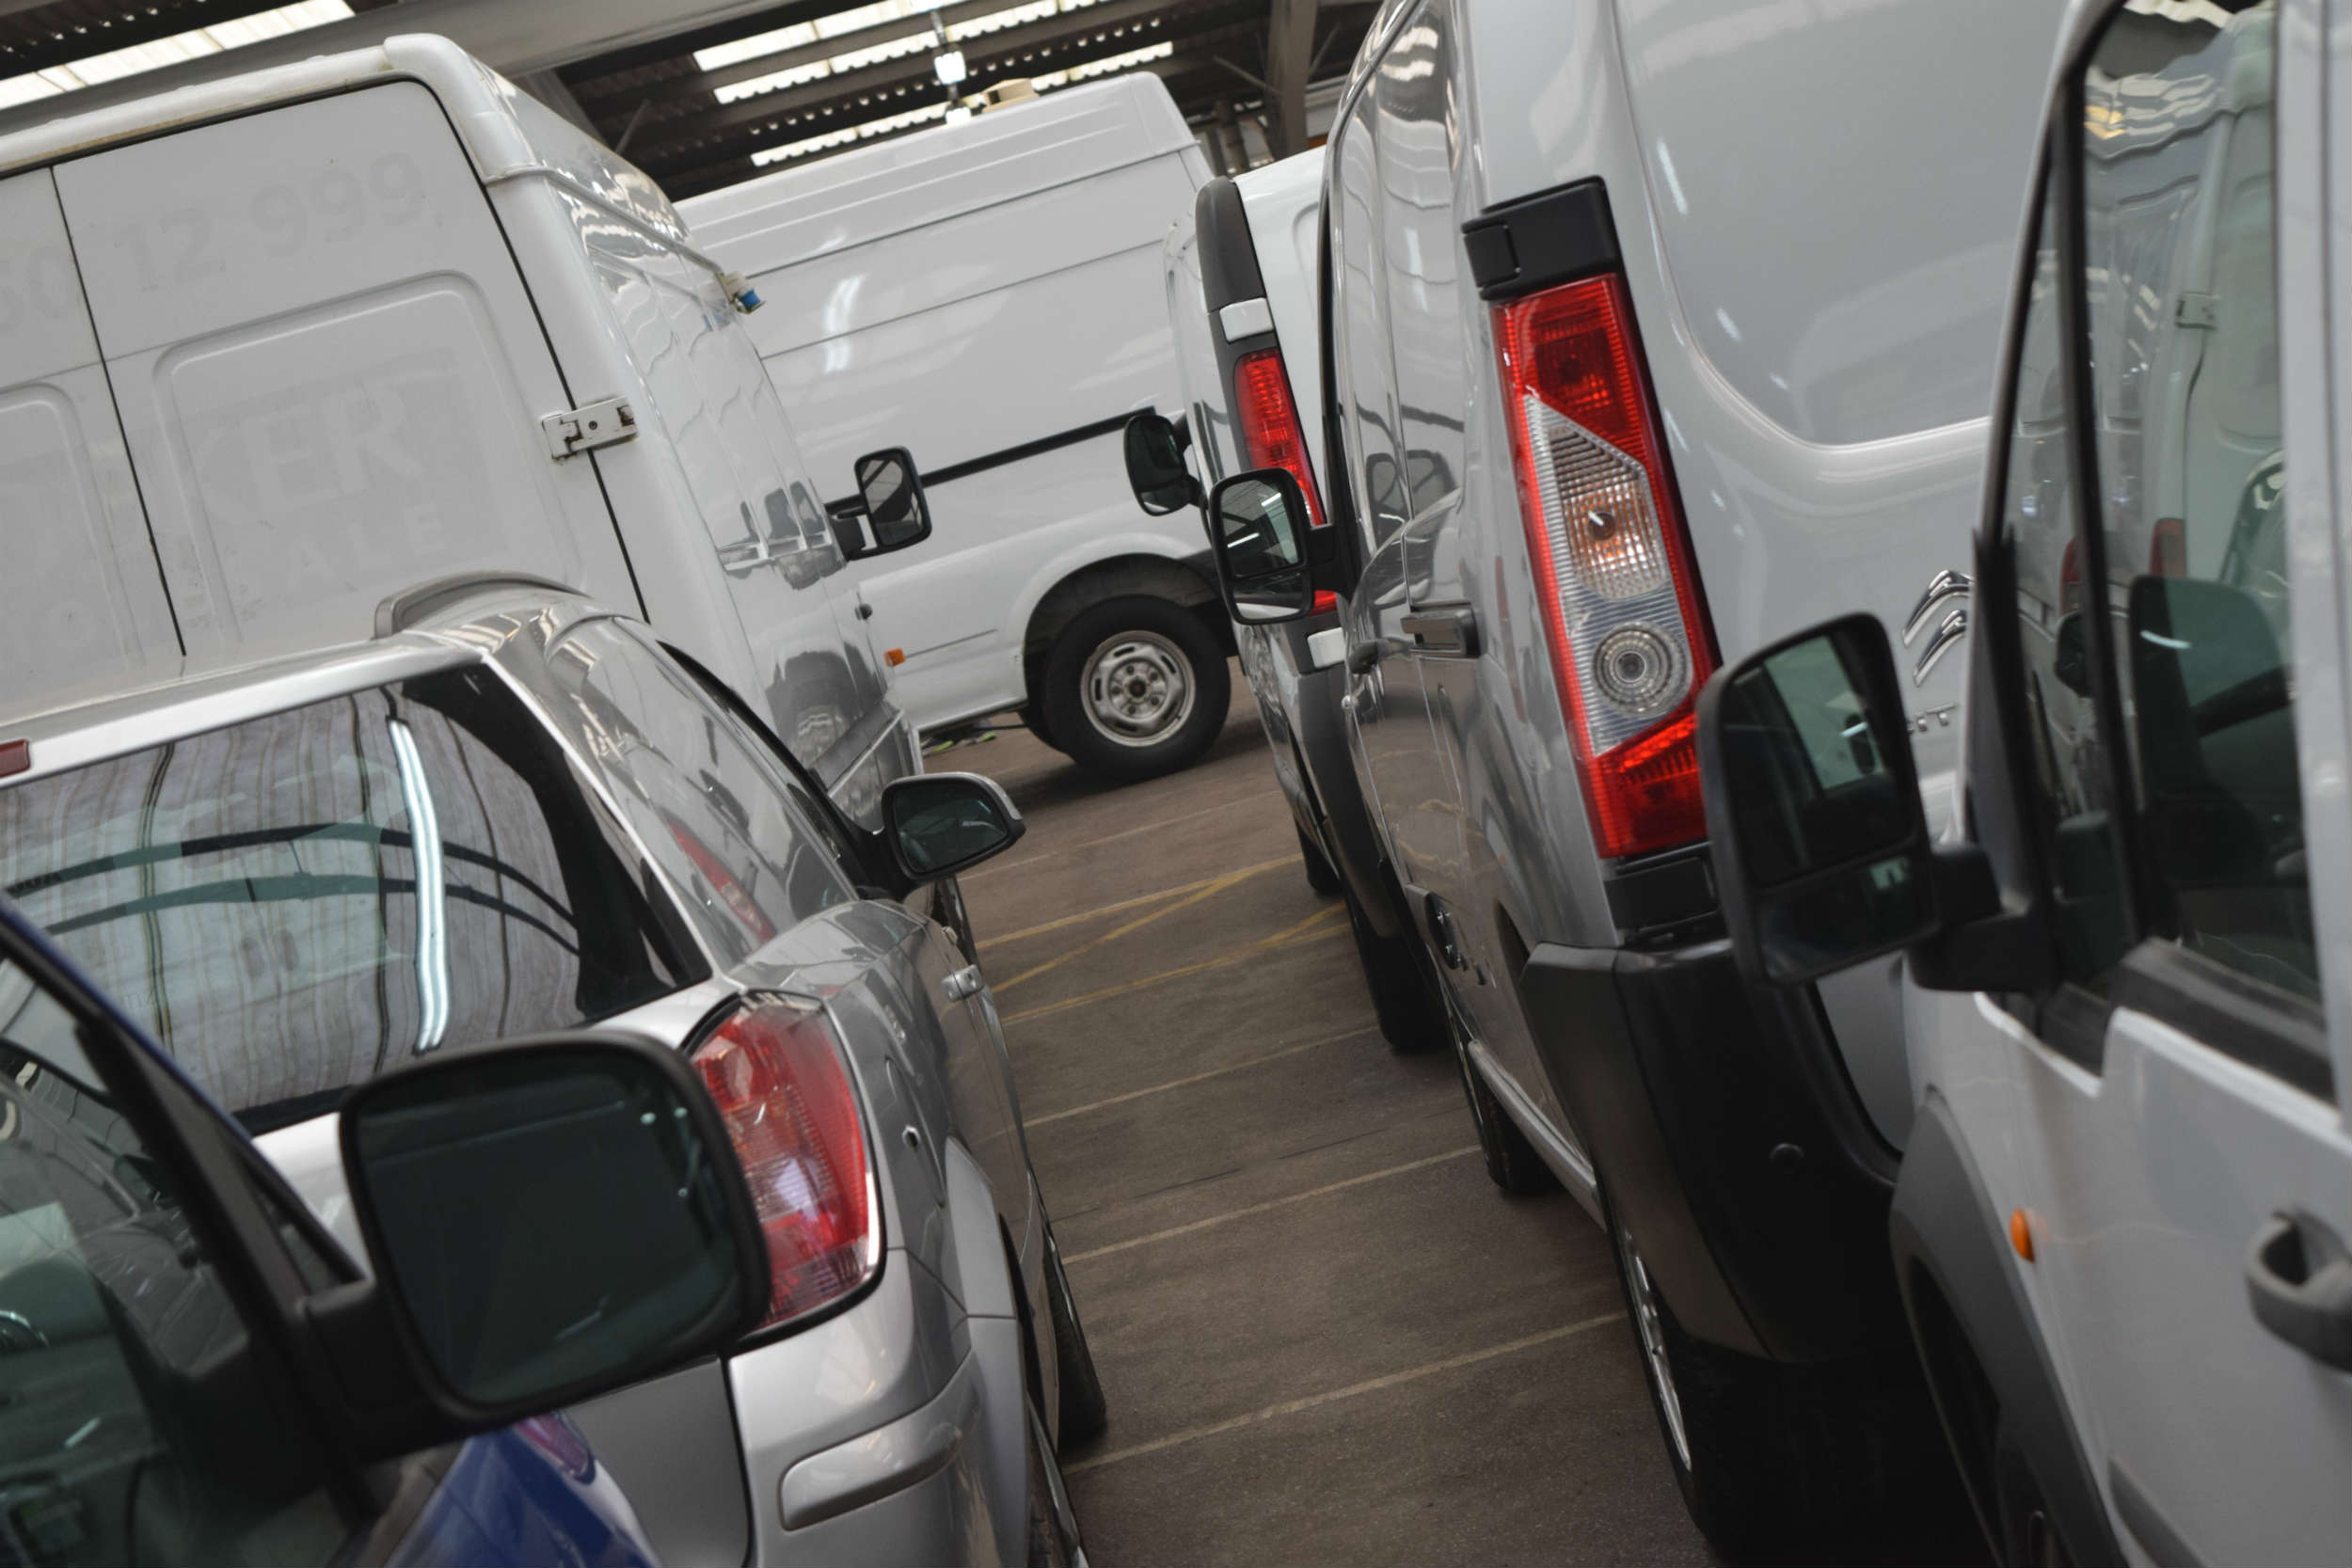 Vans lined up for a Manheim auction